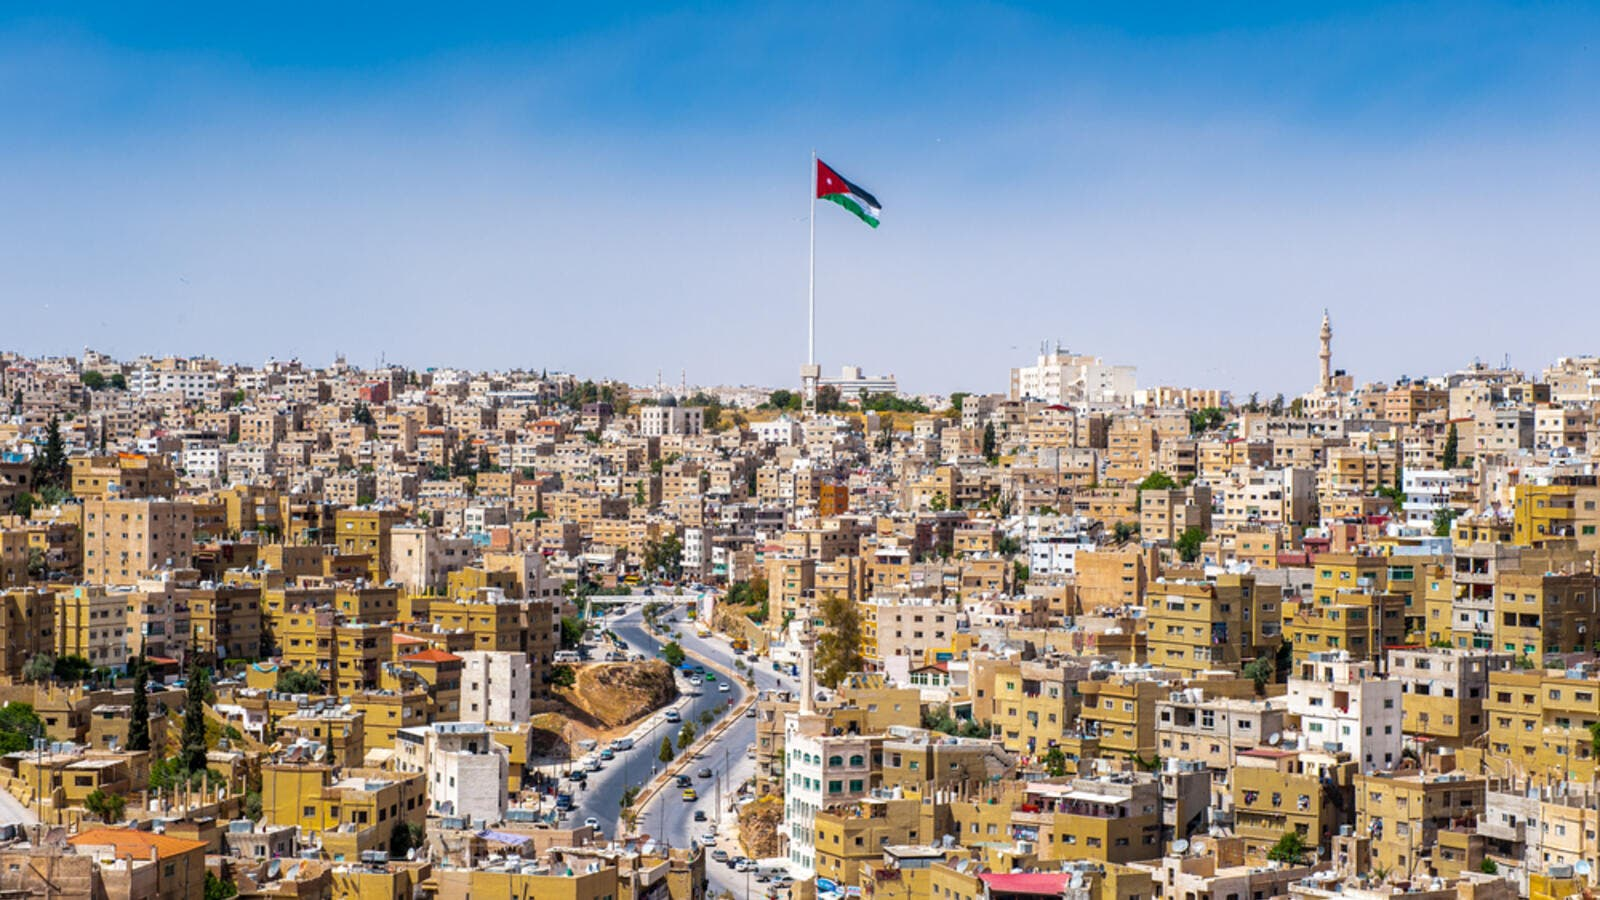 Amman, Jordan. (Shutterstock/ File Photo)